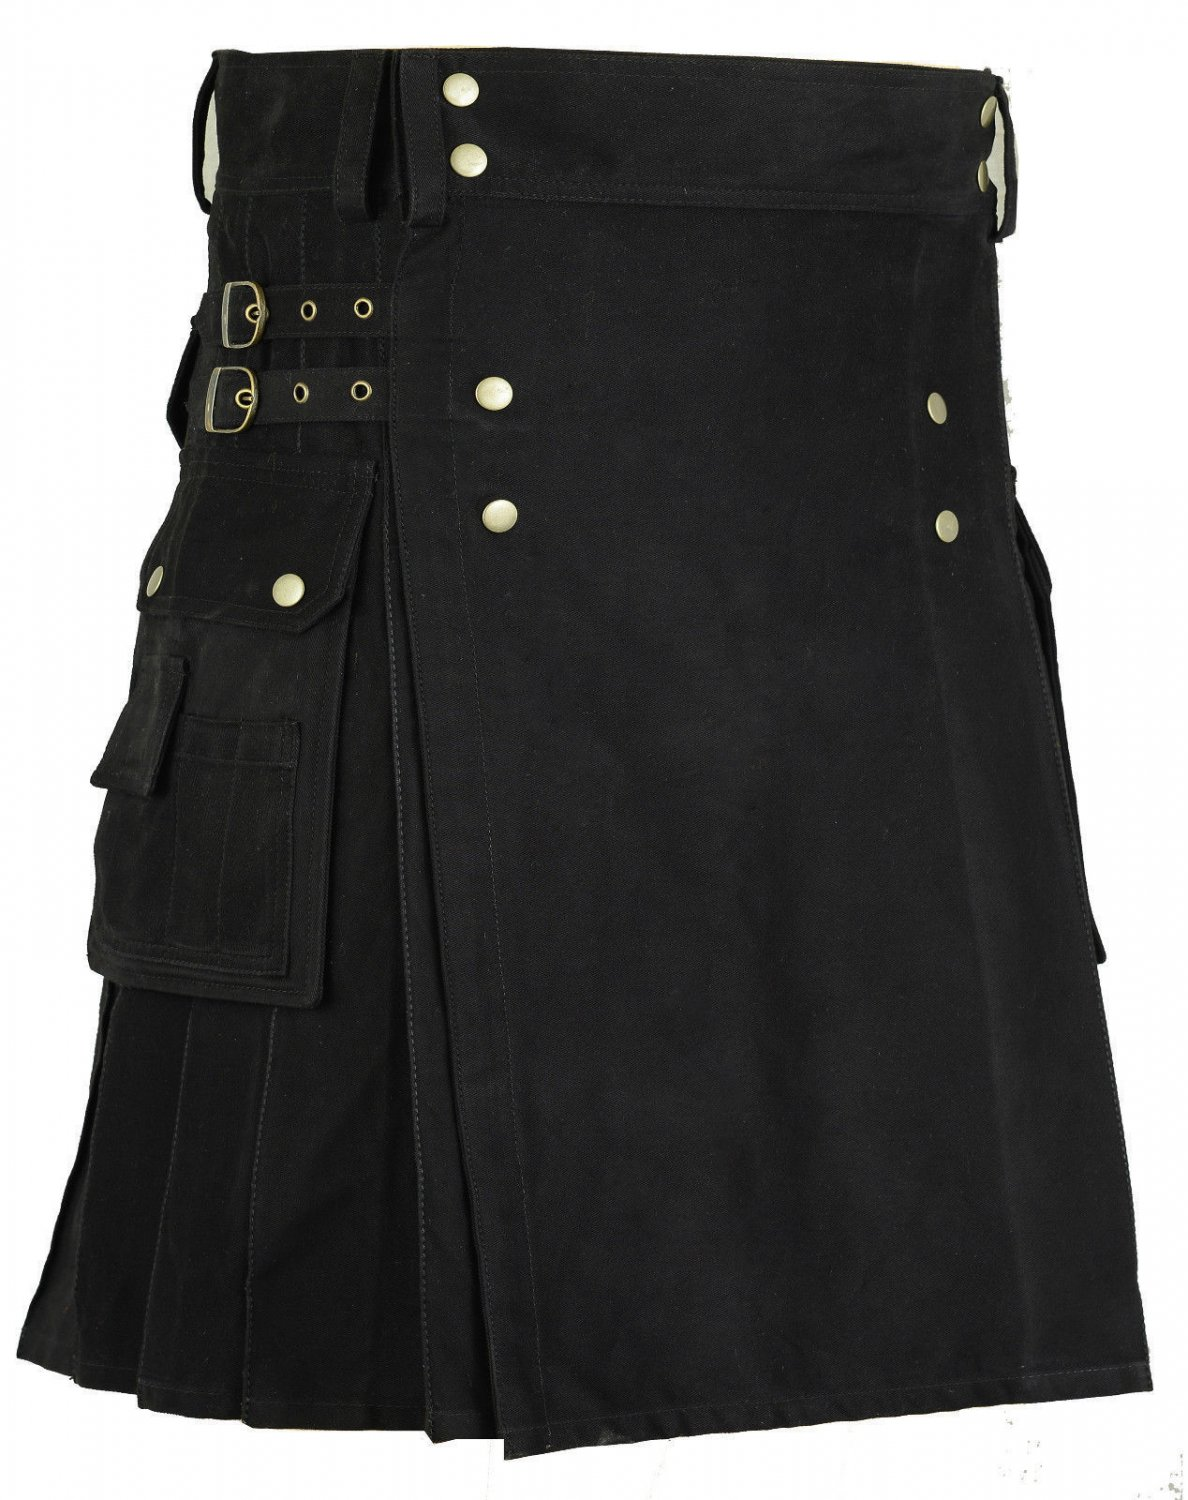 Gothic Black Cotton Outdoor Kilt for Men 46 Size Utility Kilt with Brass Material